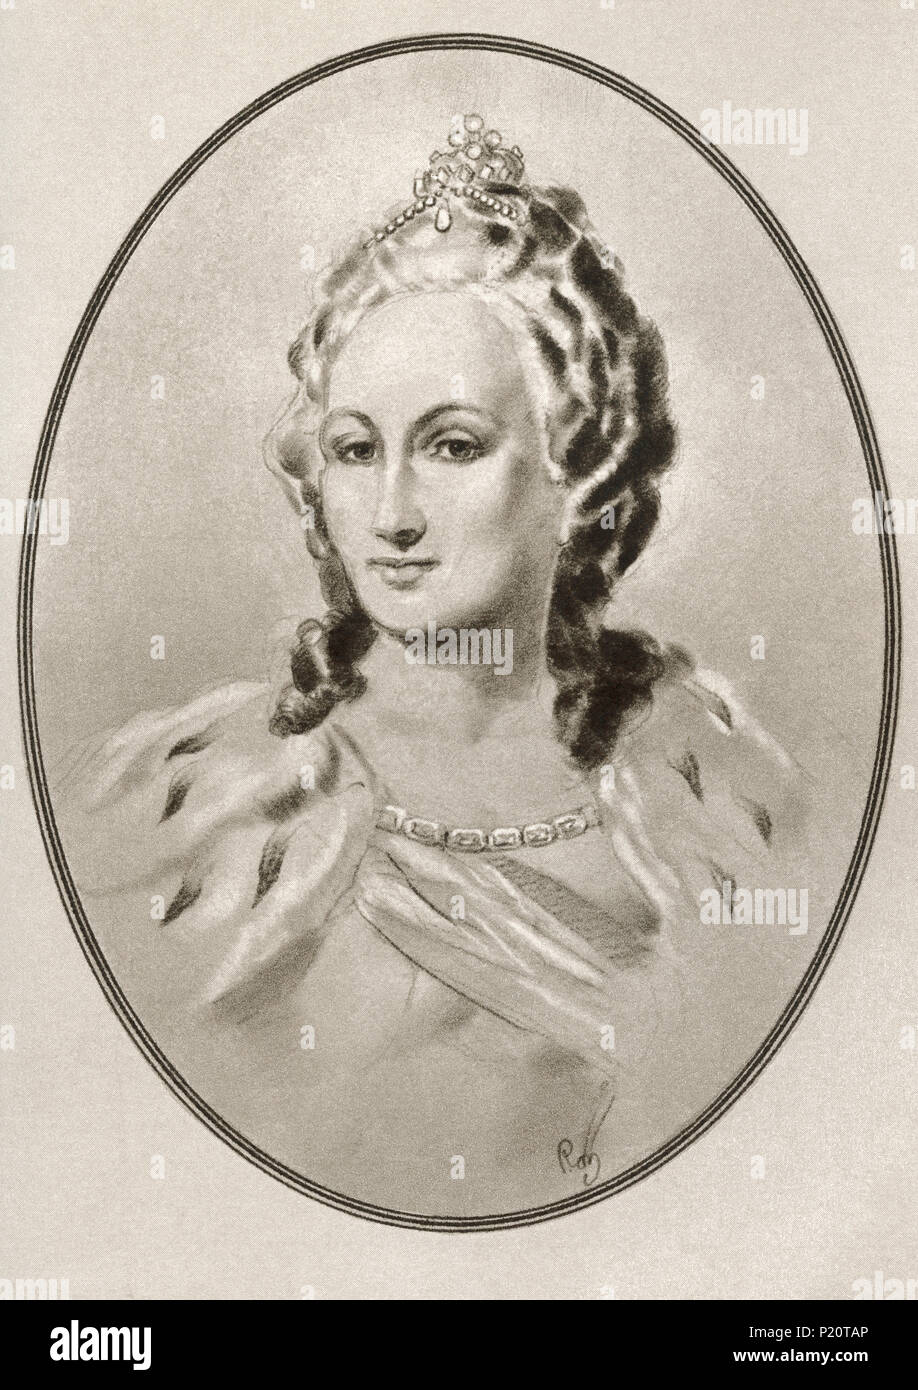 Catherine II, 1729 – 1796, aka Catherine the Great.  Empress of Russia.  Illustration by Gordon Ross, American artist and illustrator (1873-1946), from Living Biographies of Famous Rulers. Stock Photo